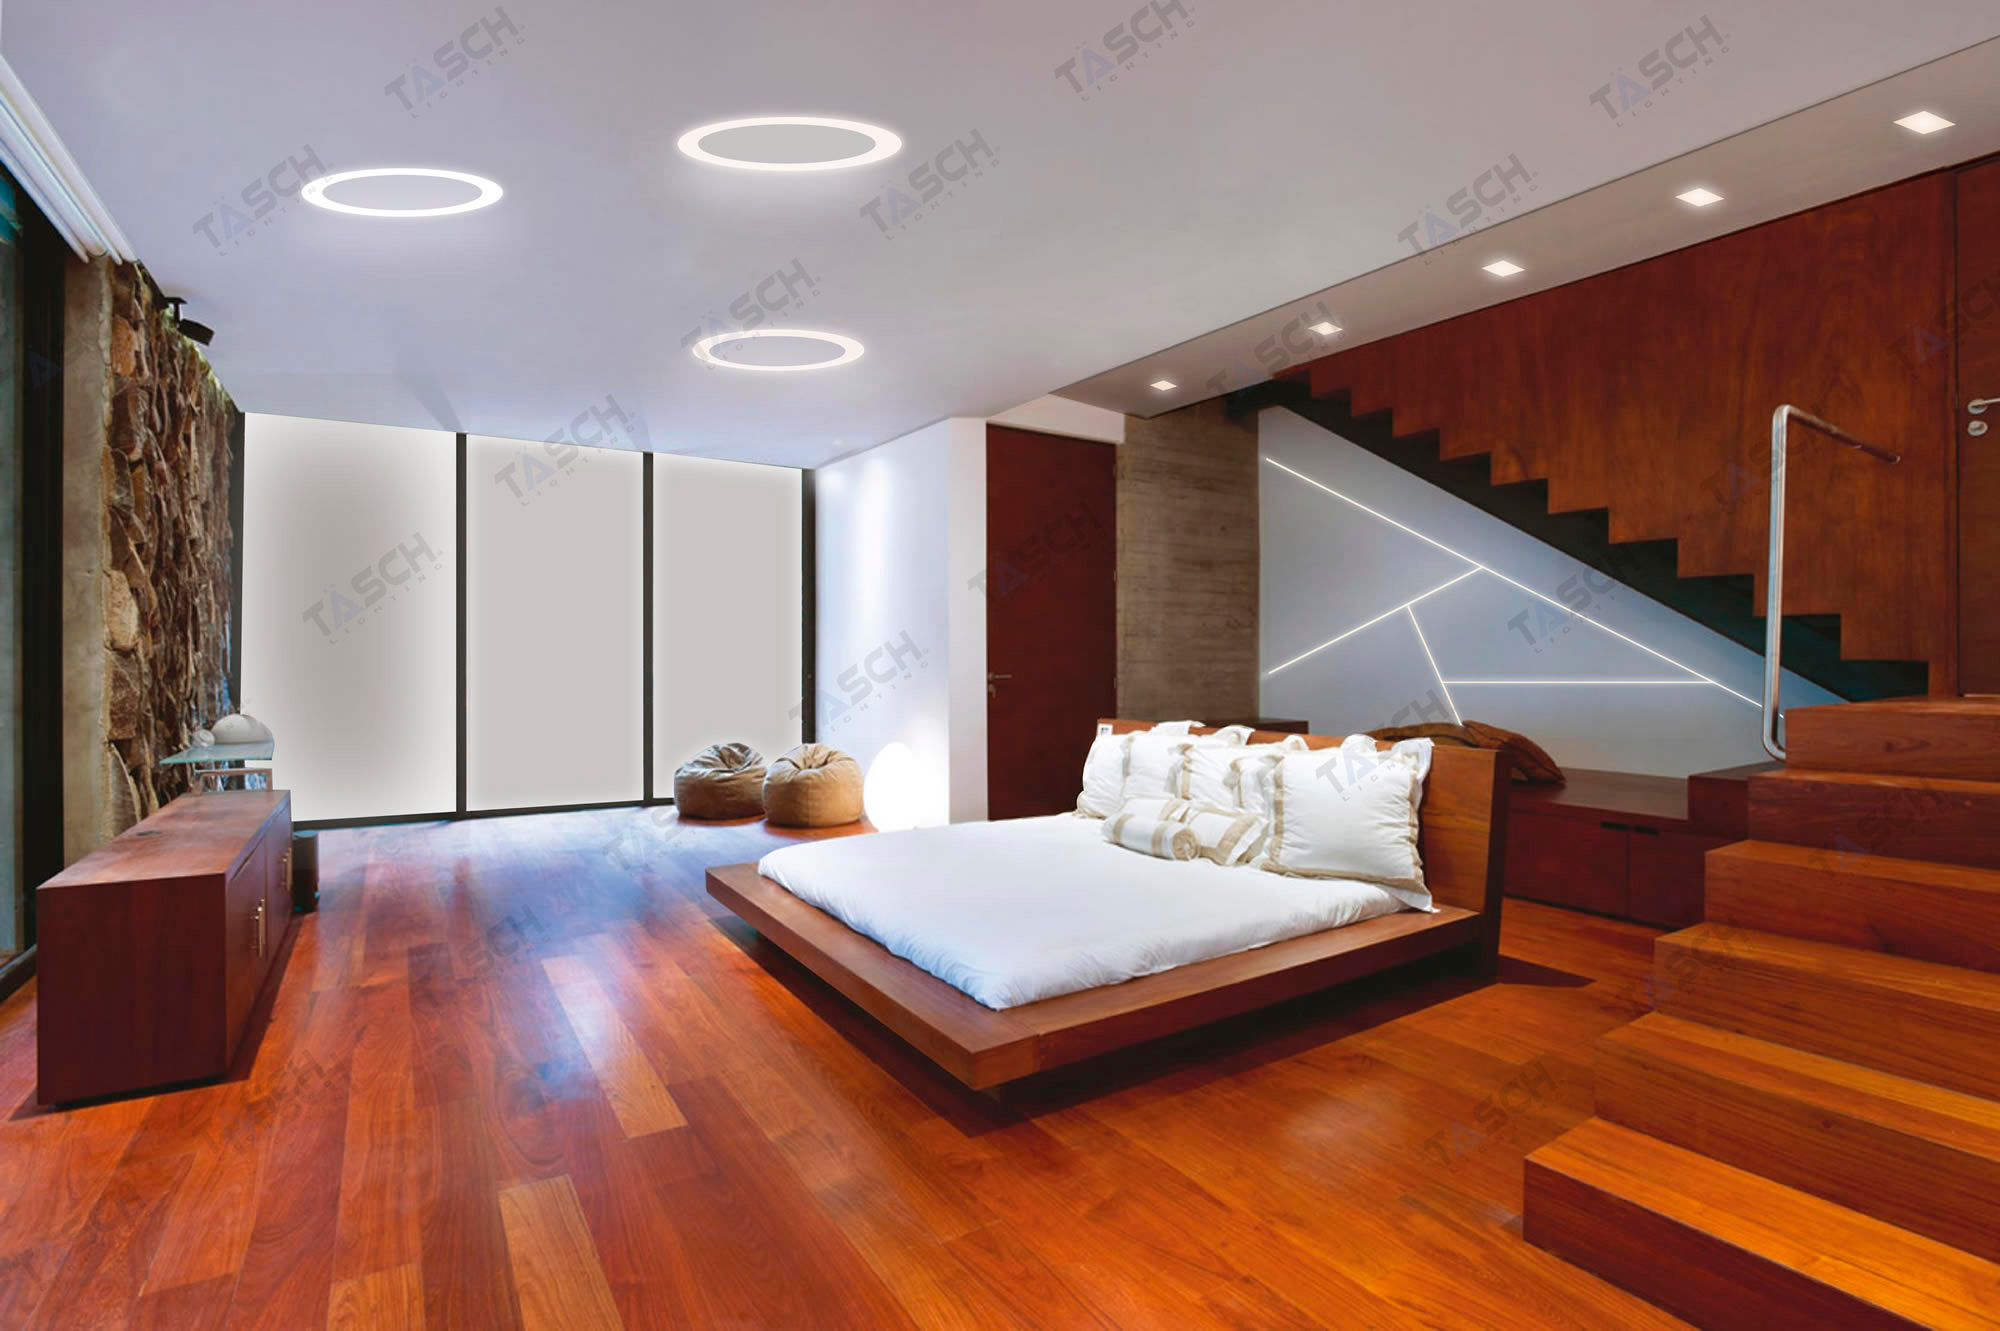 ... Click To Enlarge Image 1_Bedroom Design Ideas, Linear Lighting Miami, LED  Lighting Miami, ...